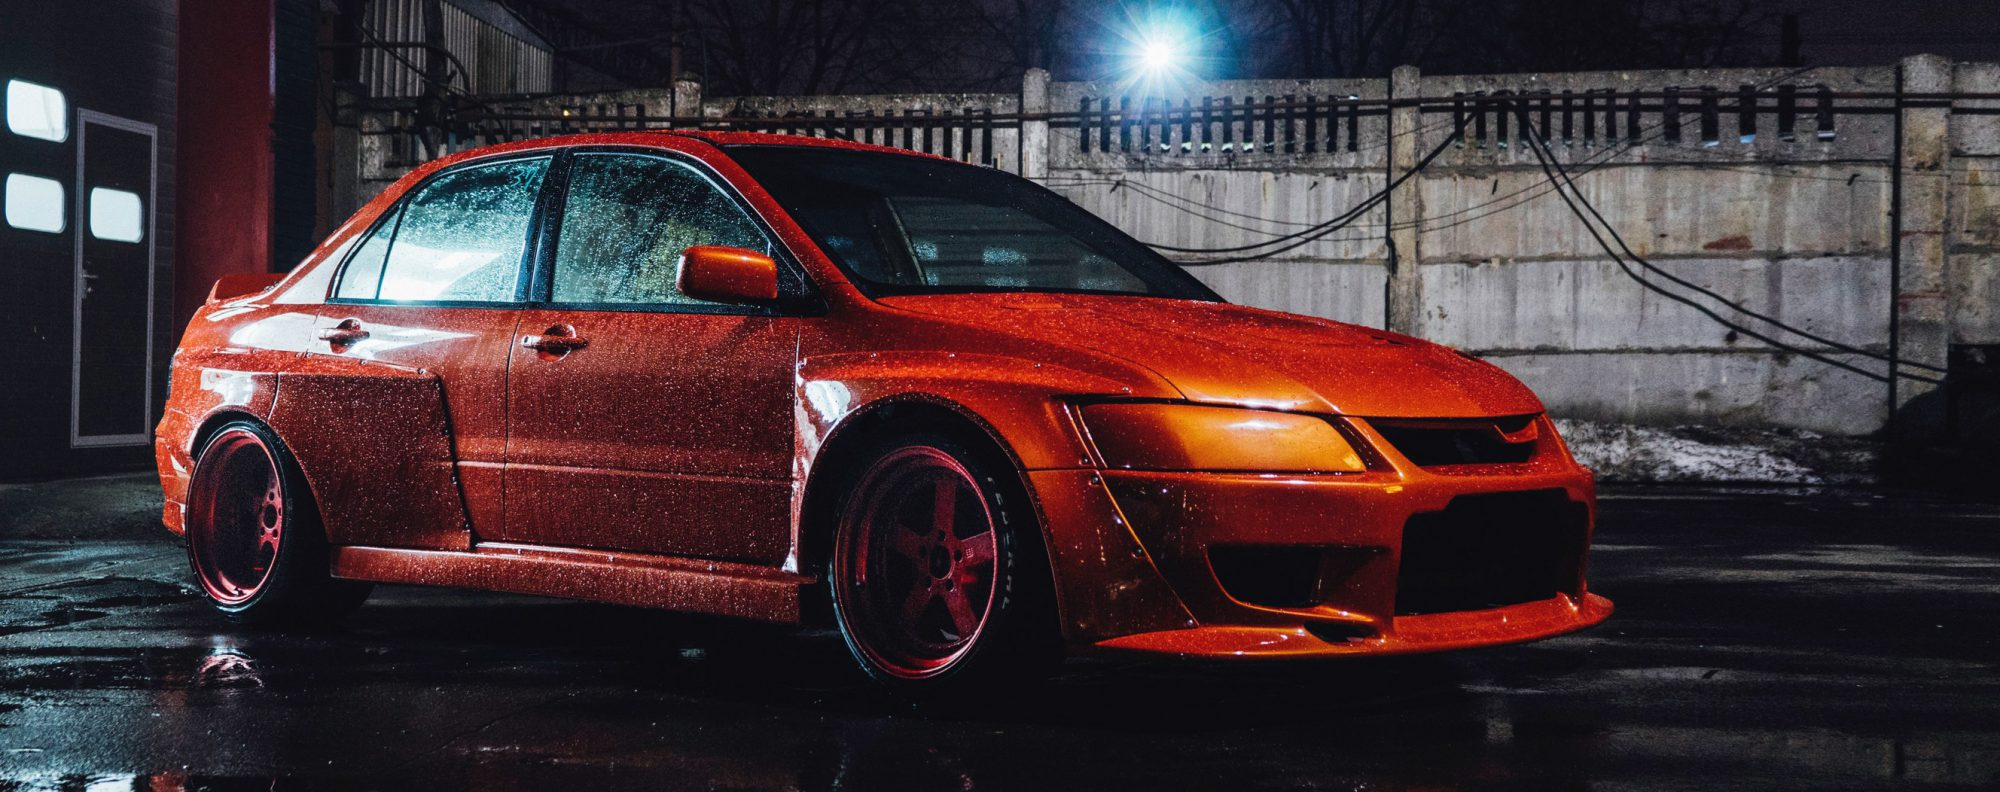 Mitsubishi Evolution widebody kit